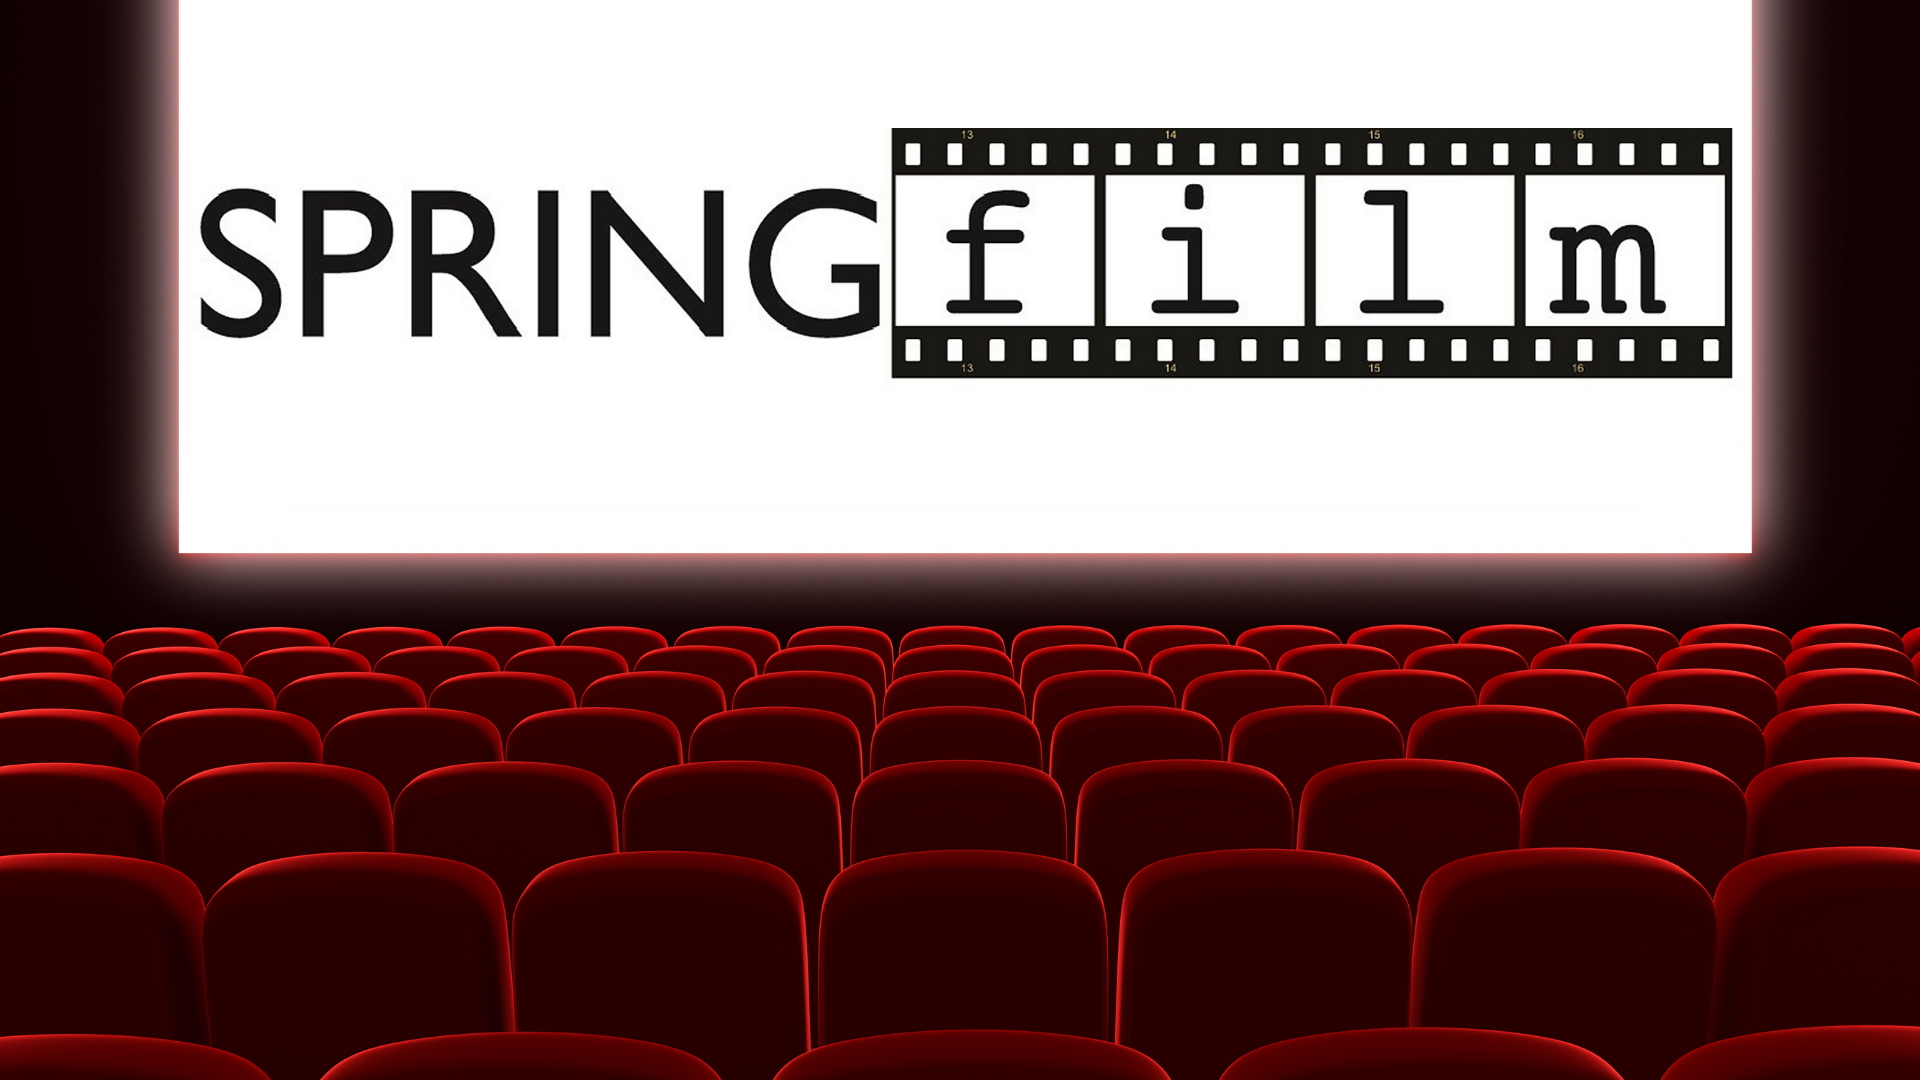 The interior of a movie theater with the word SpringFilm projected on the movie screen